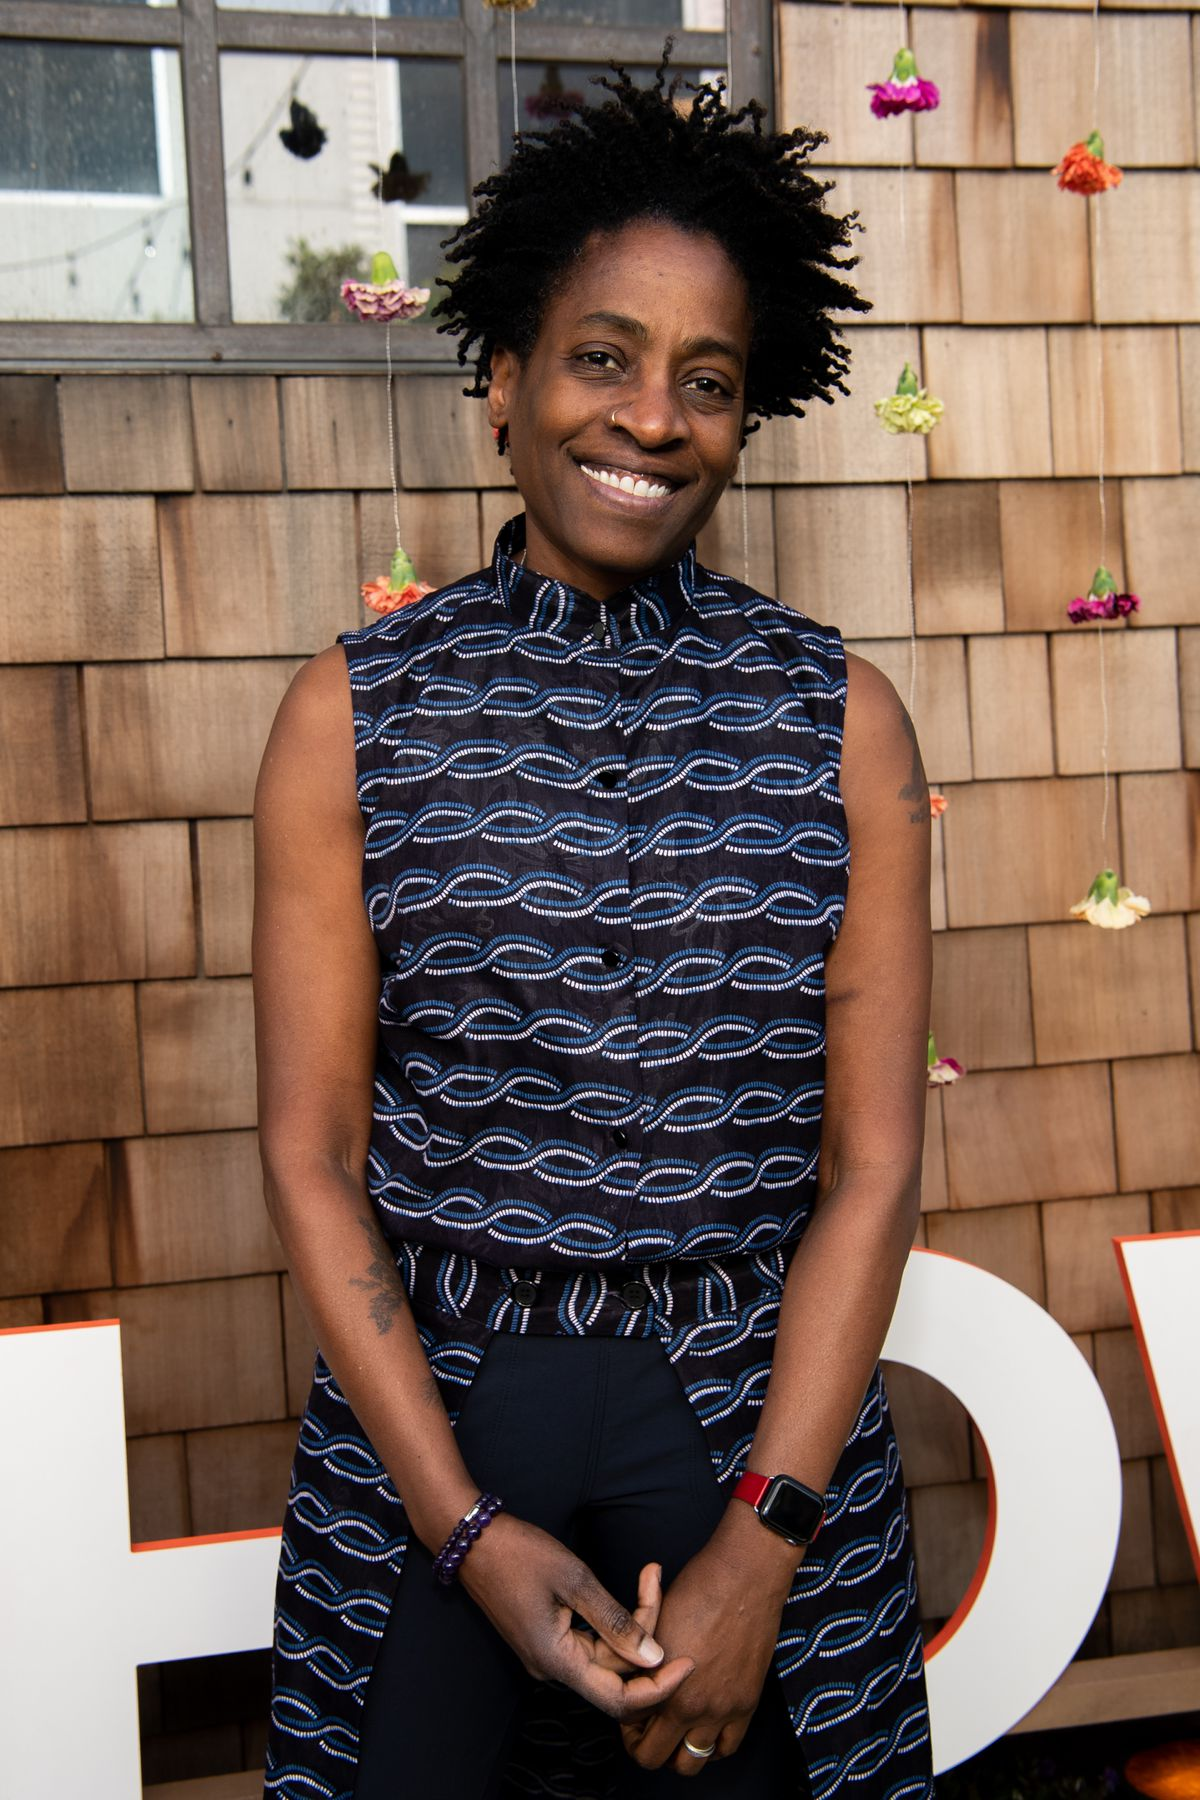 """Jacqueline Woodson, whose previous honors include a National Book Award, won her third Coretta Scott King Award for best work by a Black author for """"Before the Ever After."""""""